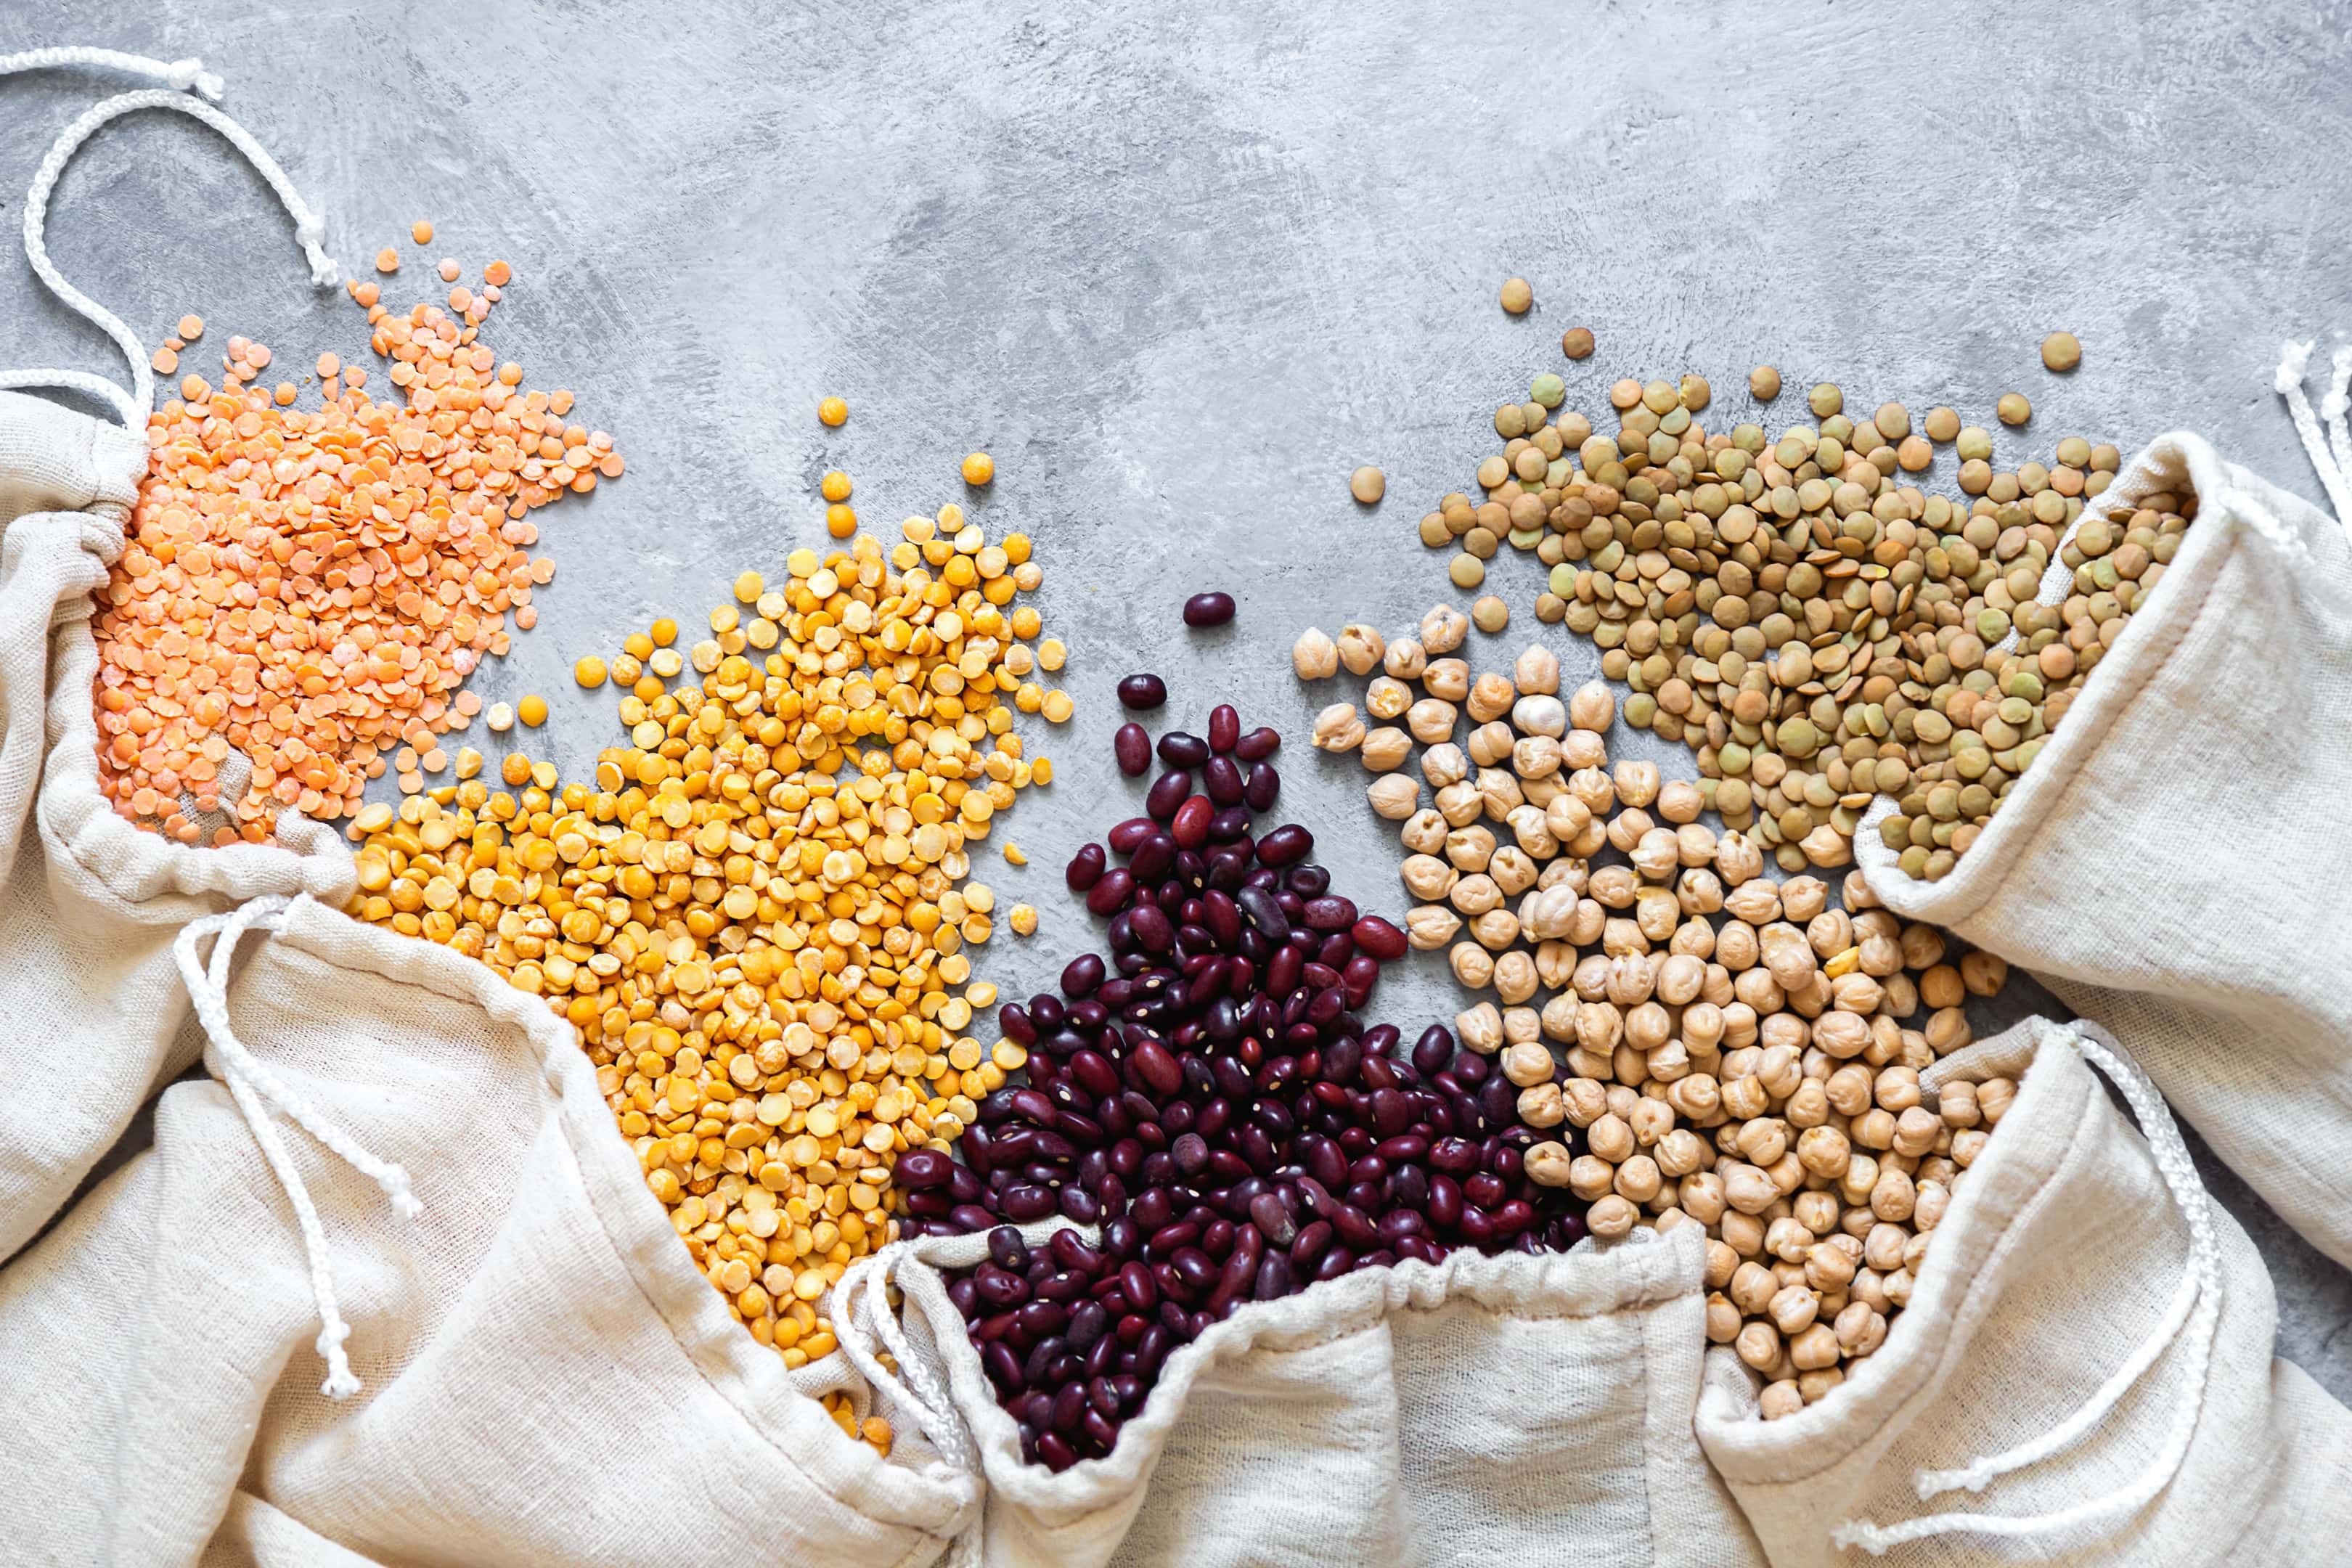 Various legumes spill from eco bags